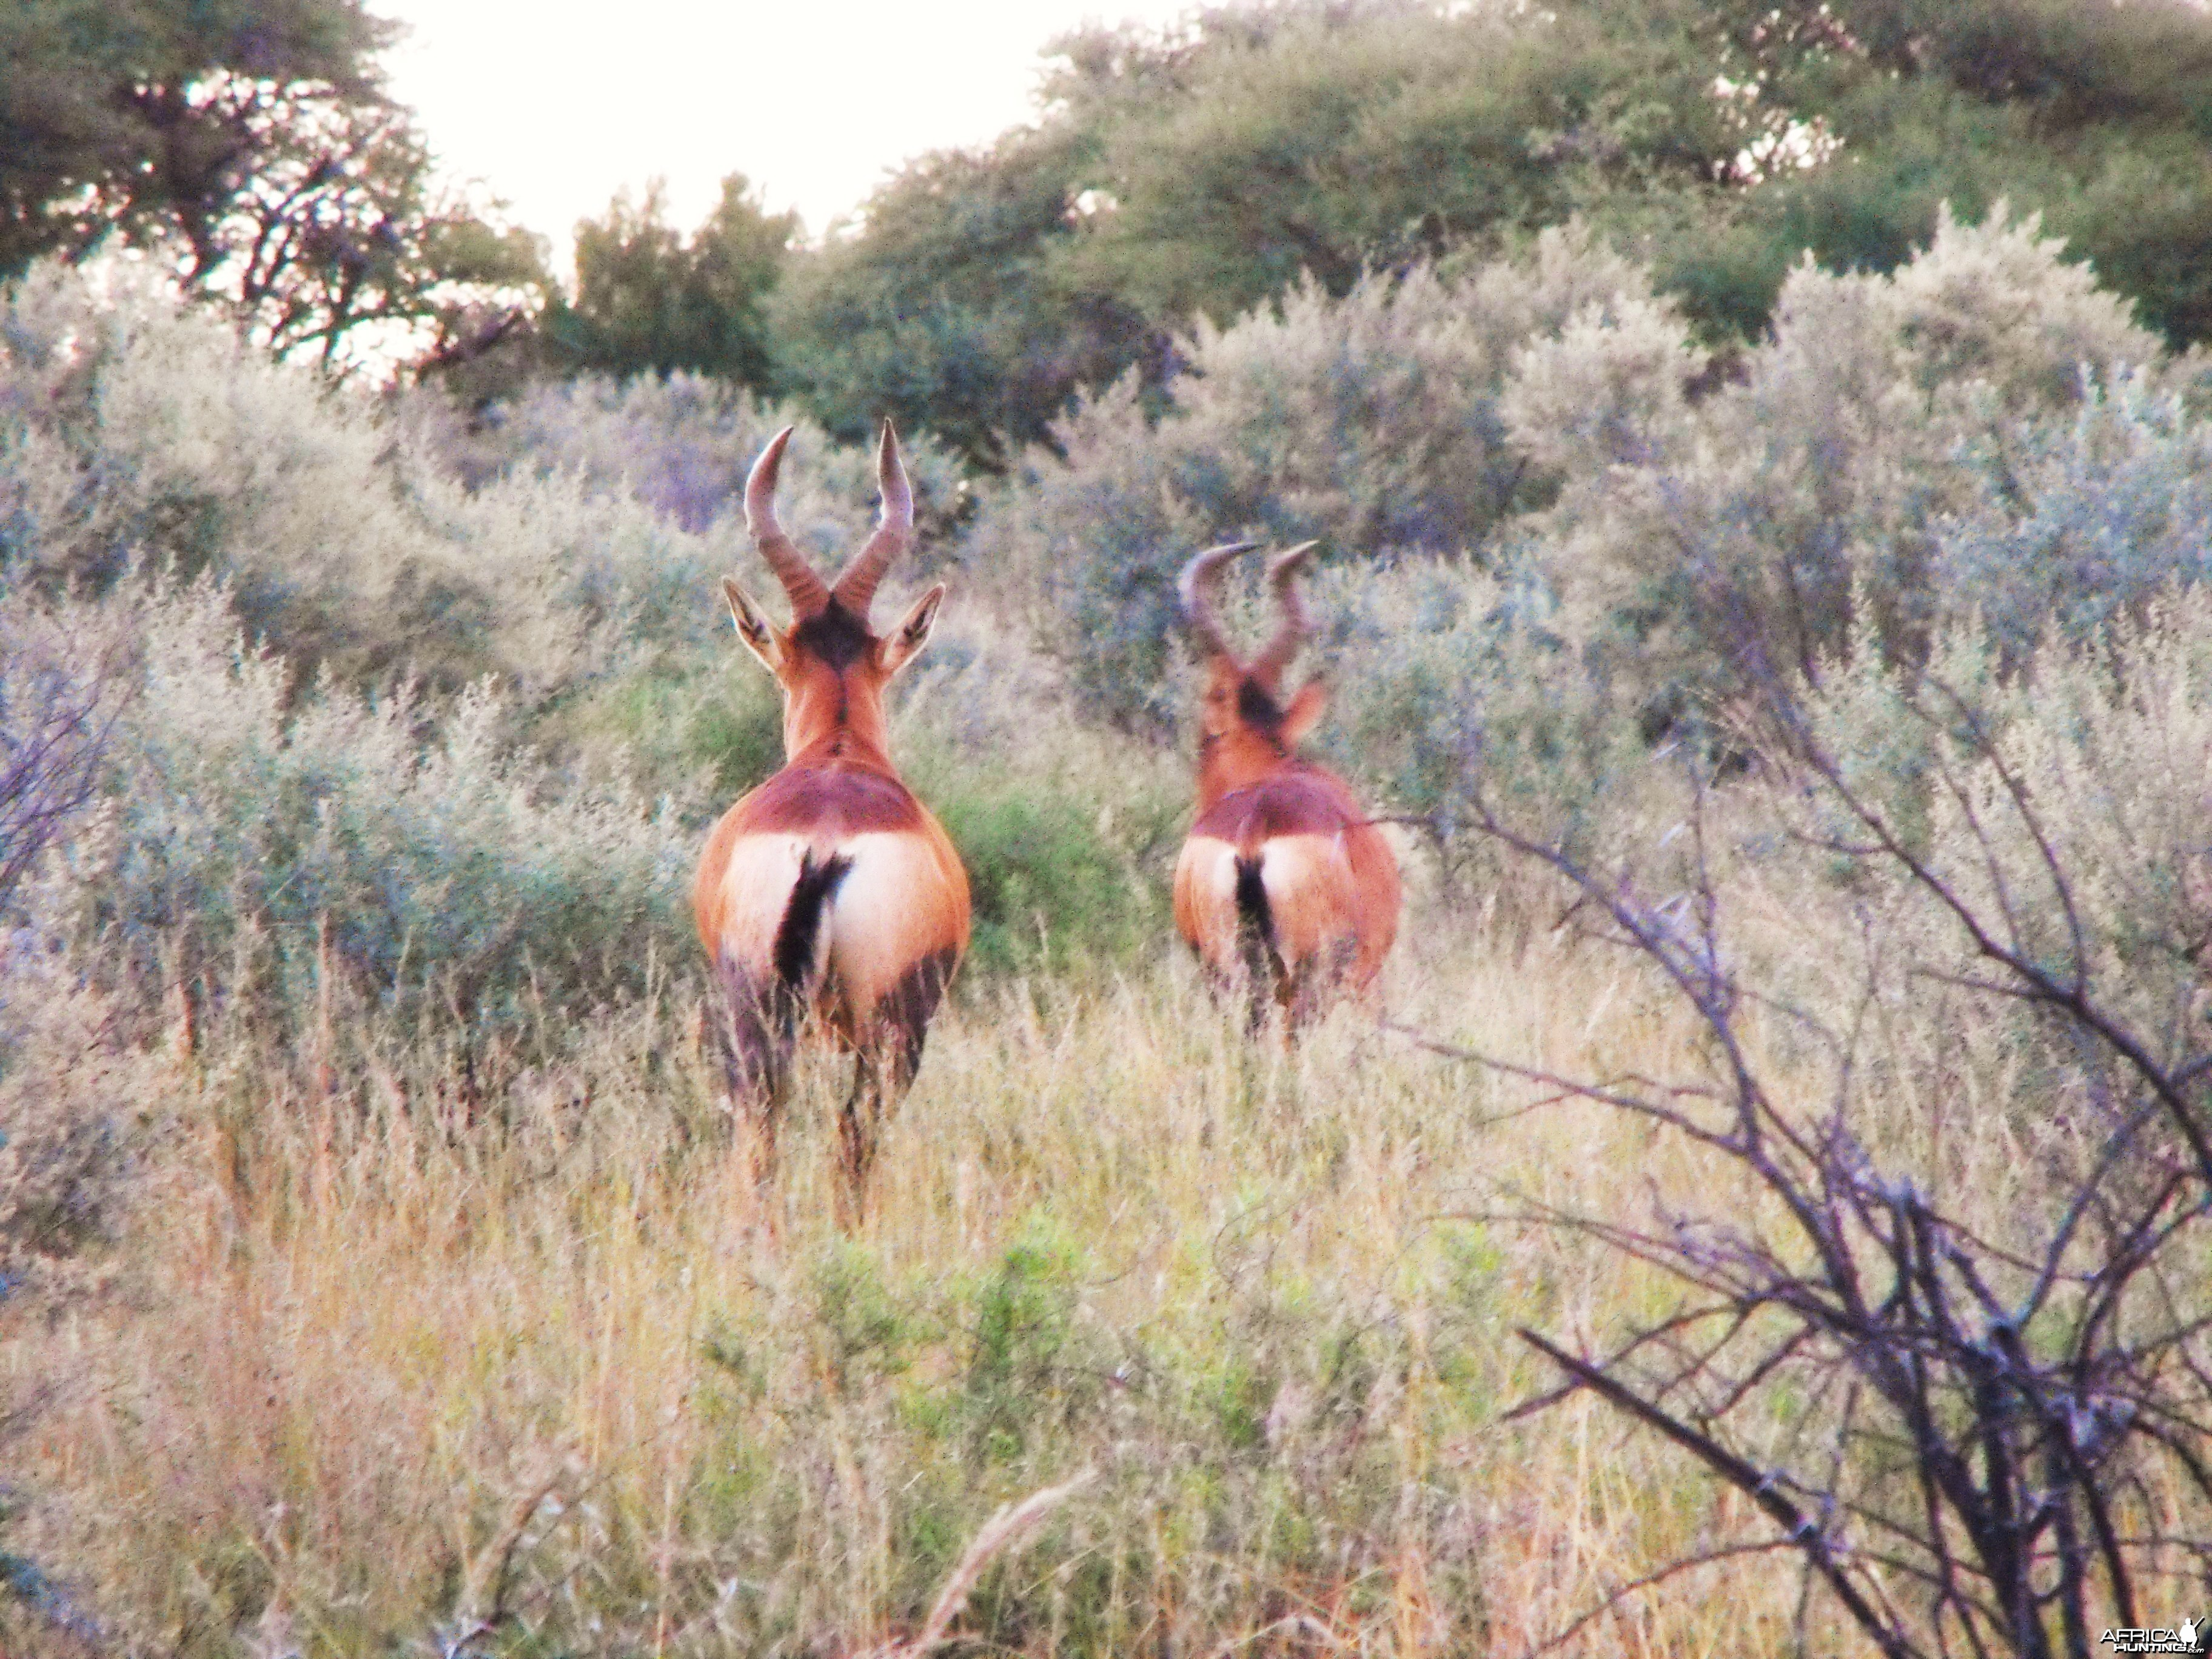 Fleeting glimps at some Red Hartebeest